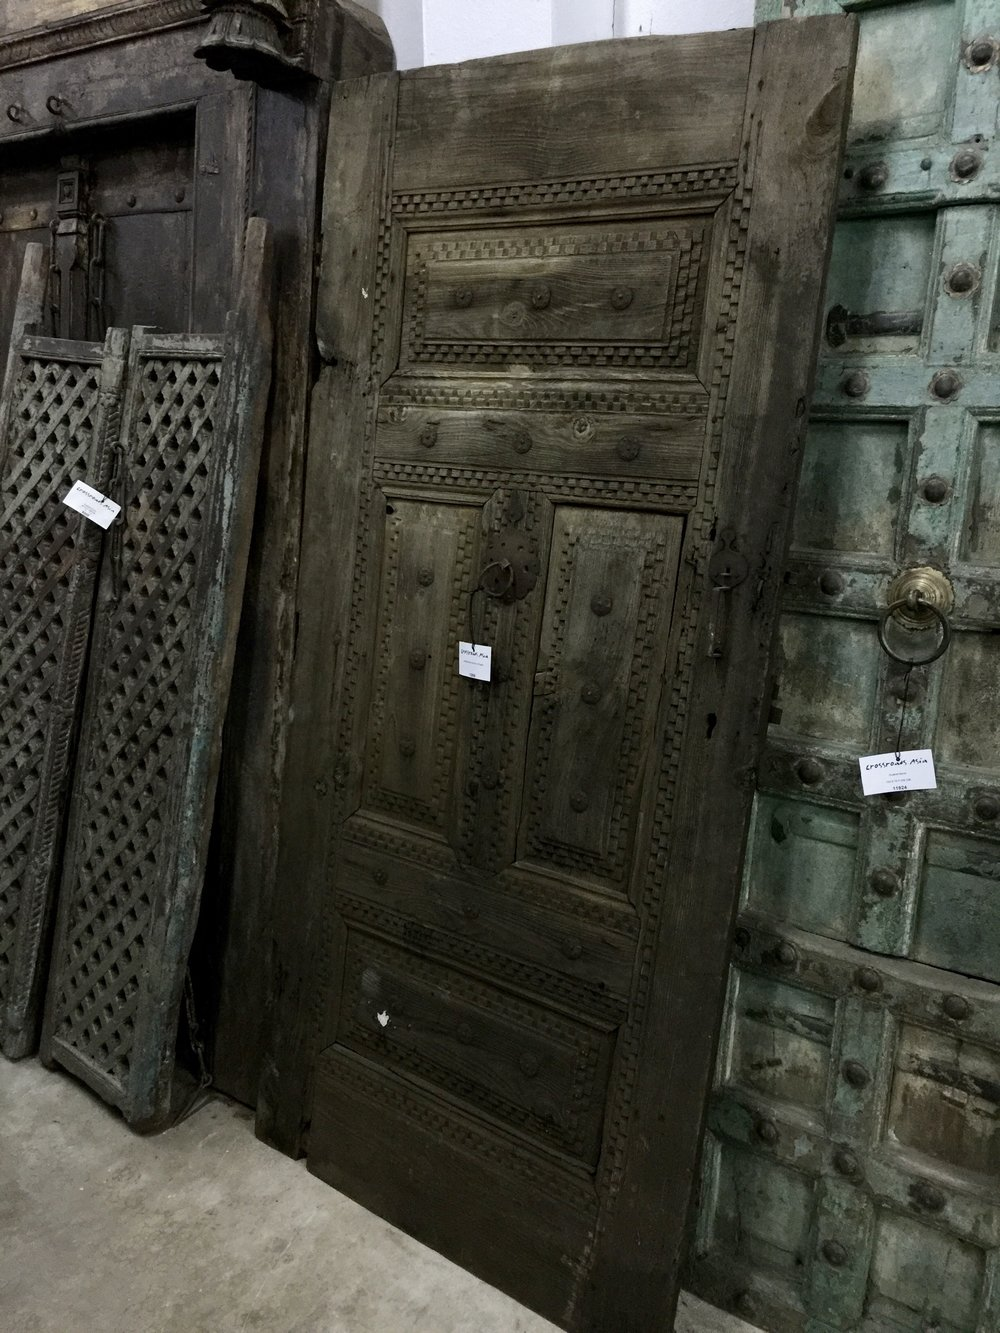 Anatolian/Black Sea Door--100 years